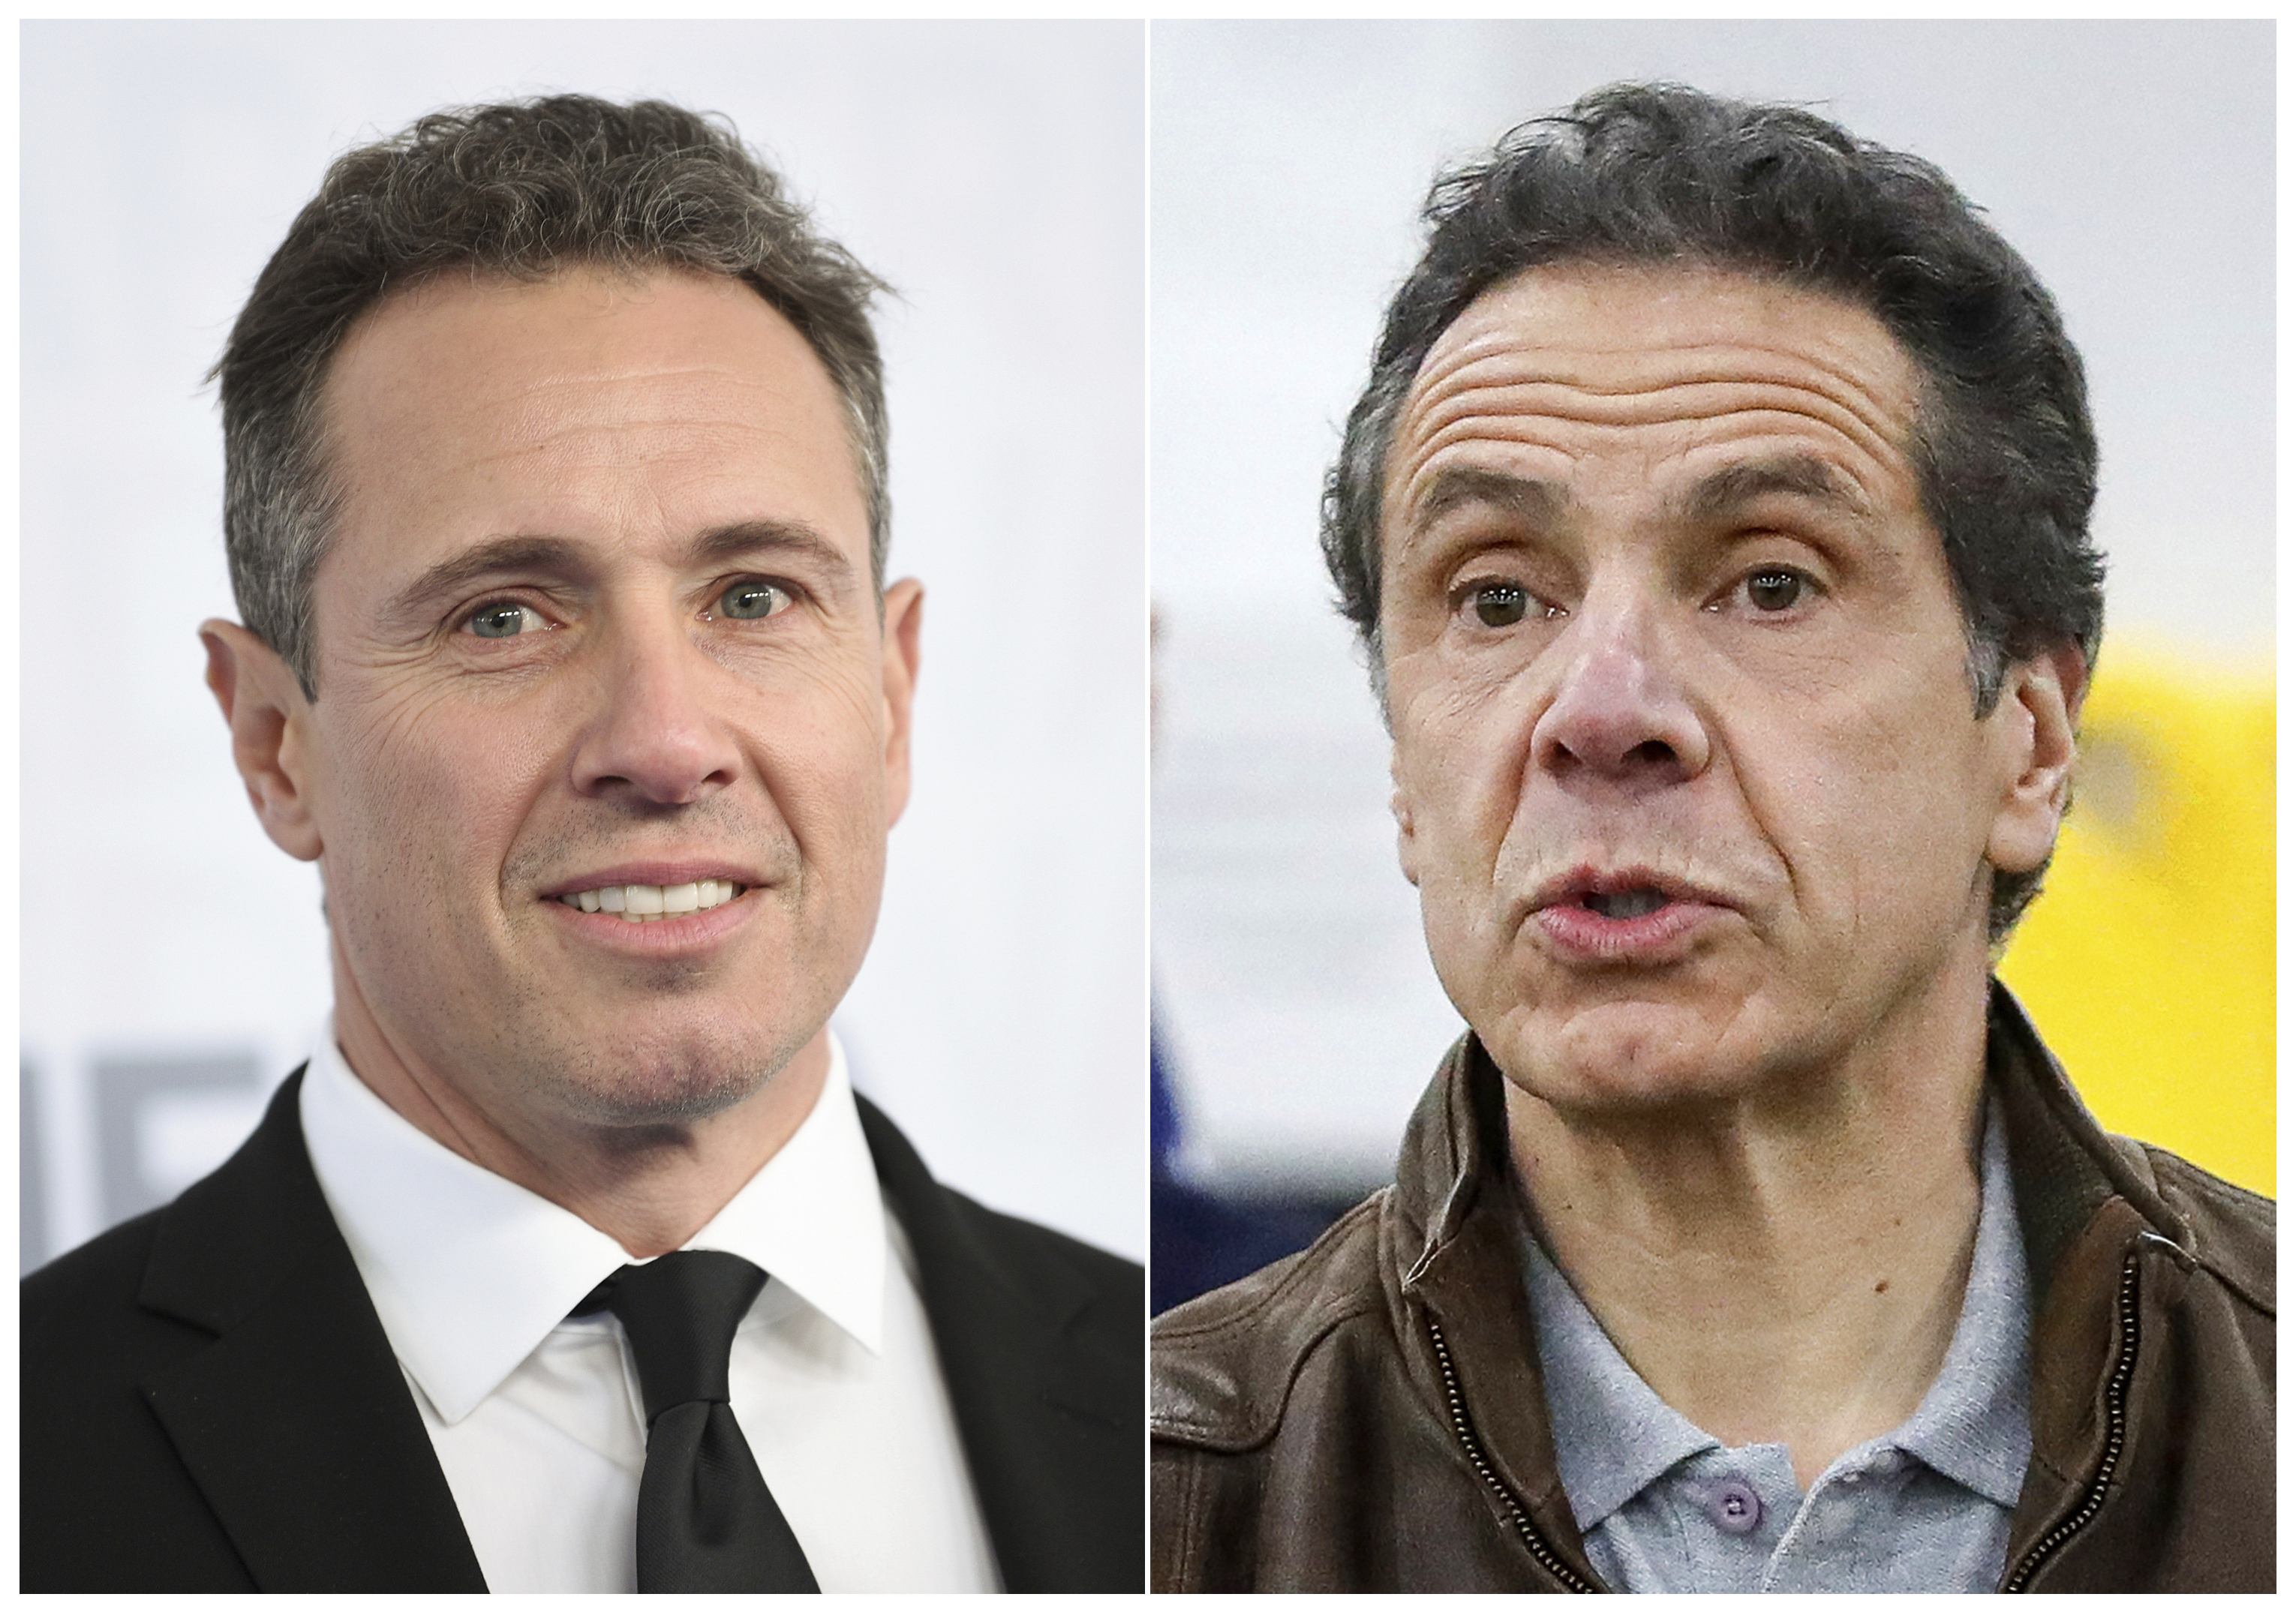 This combination photo shows CNN news anchor Chris Cuomo at the WarnerMedia Upfront in New York on May 15, 2019, left, and New York Gov. Andrew Cuomo speaking during a news conference in New York on March 23, 2020.